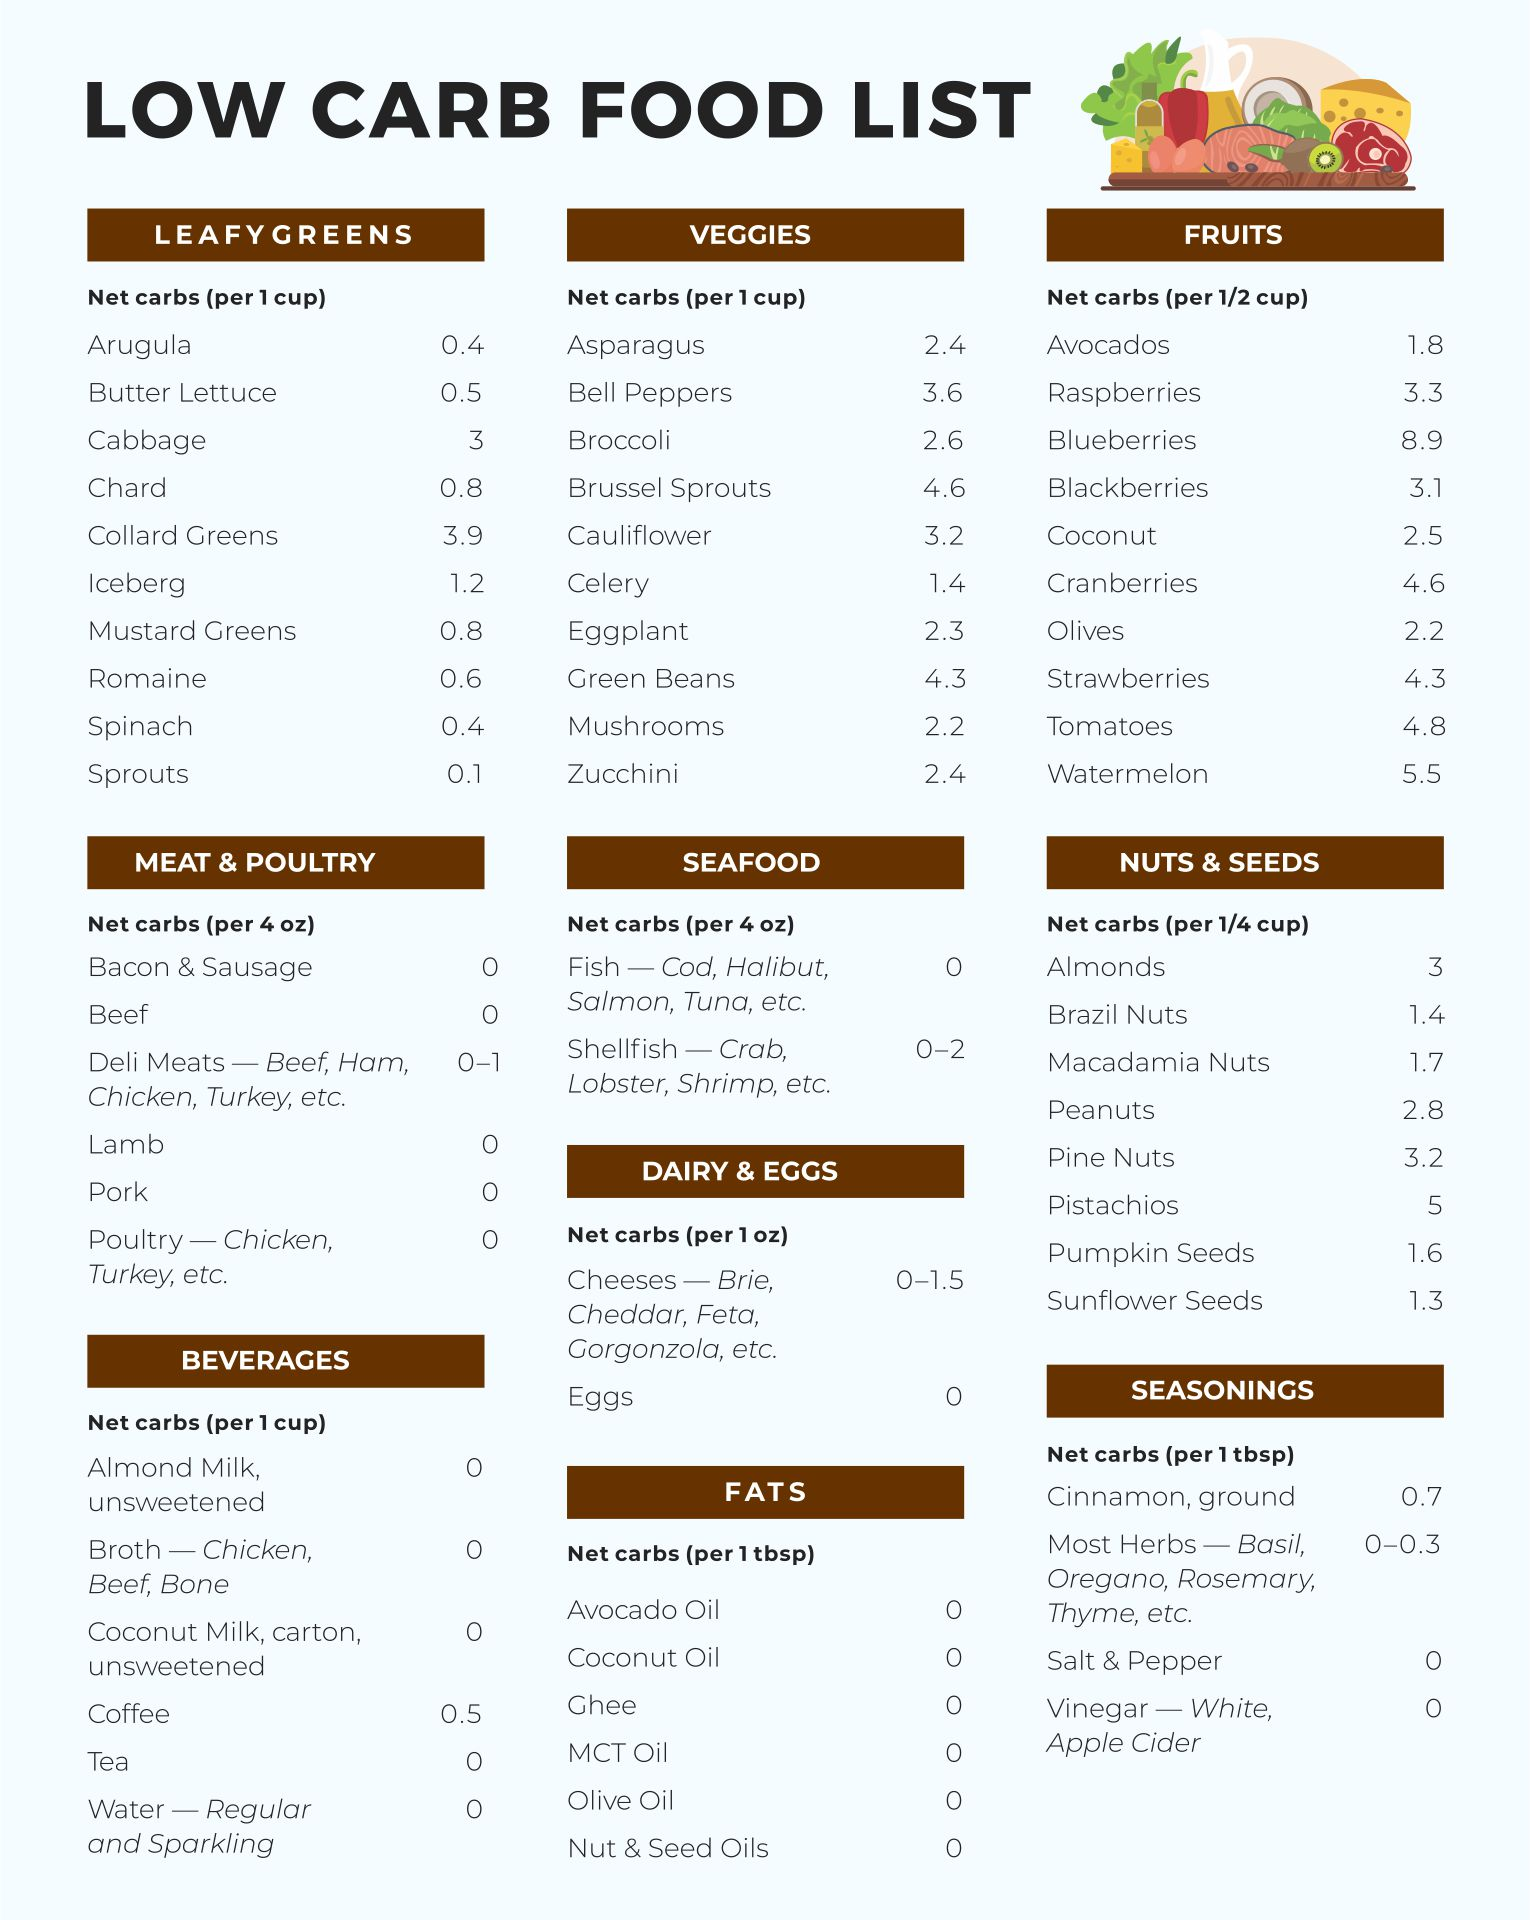 Low Carb Foods List Printable